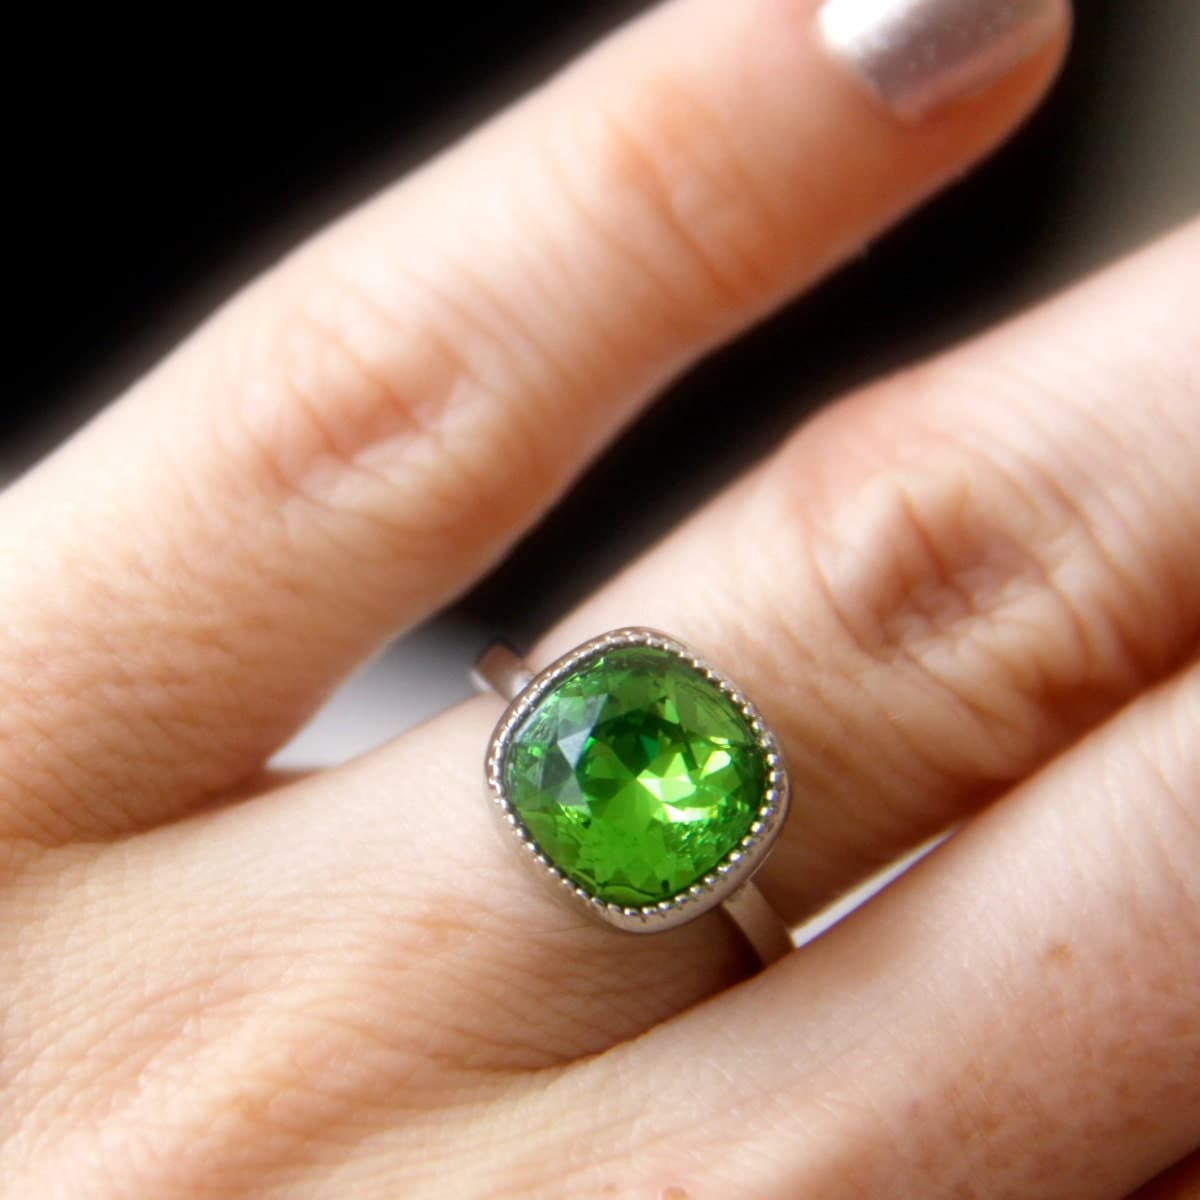 Emerald Green Cusion Ring, Swarovski Green Crystal, Square Crystal (15487)